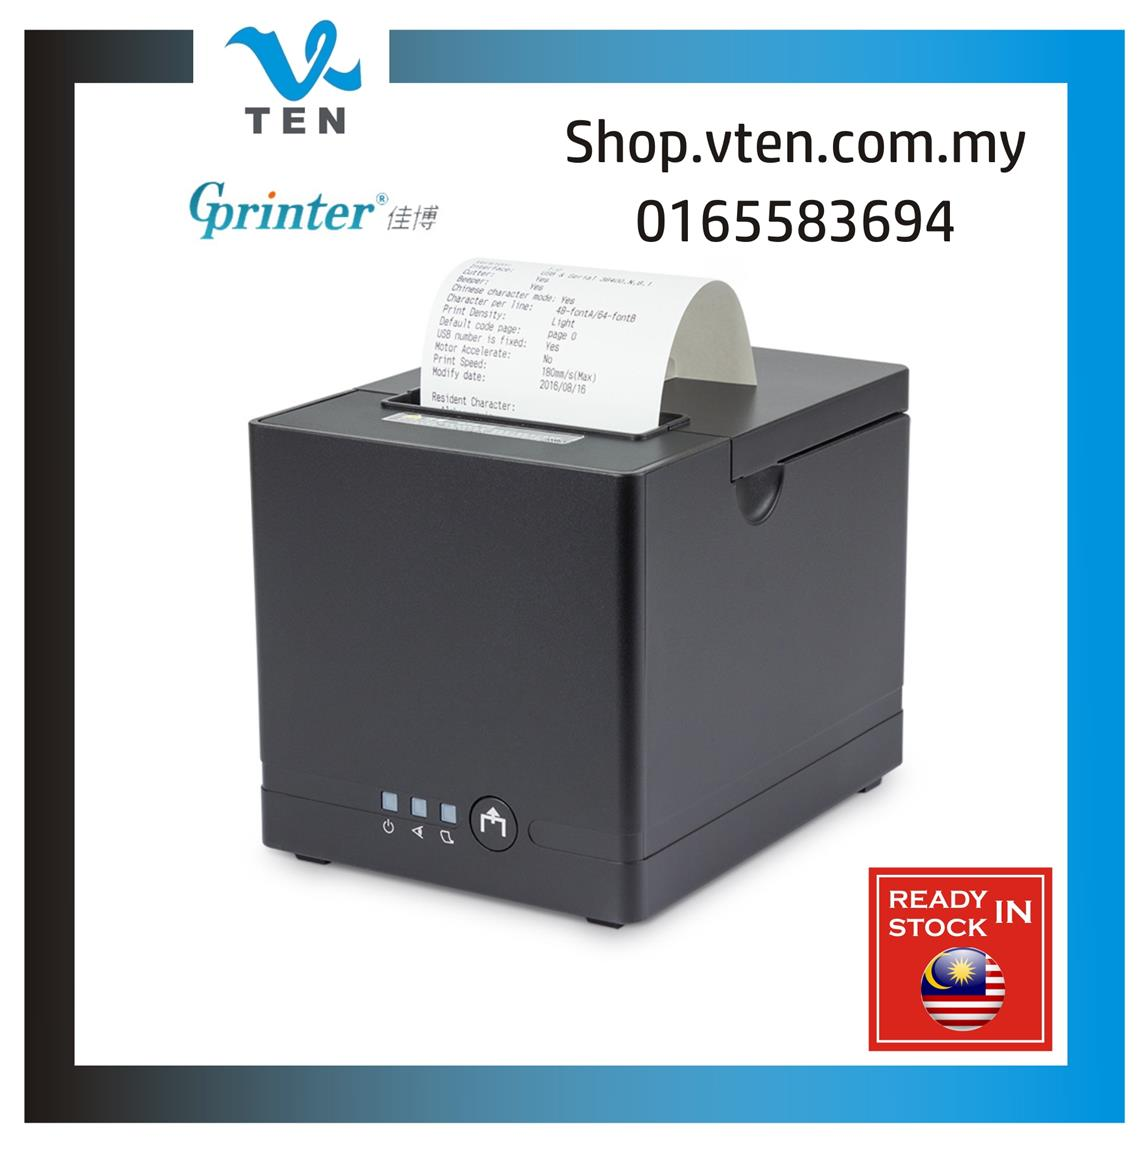 G Printer 80mm POS USB Thermal Receipt Printer With Free Paper